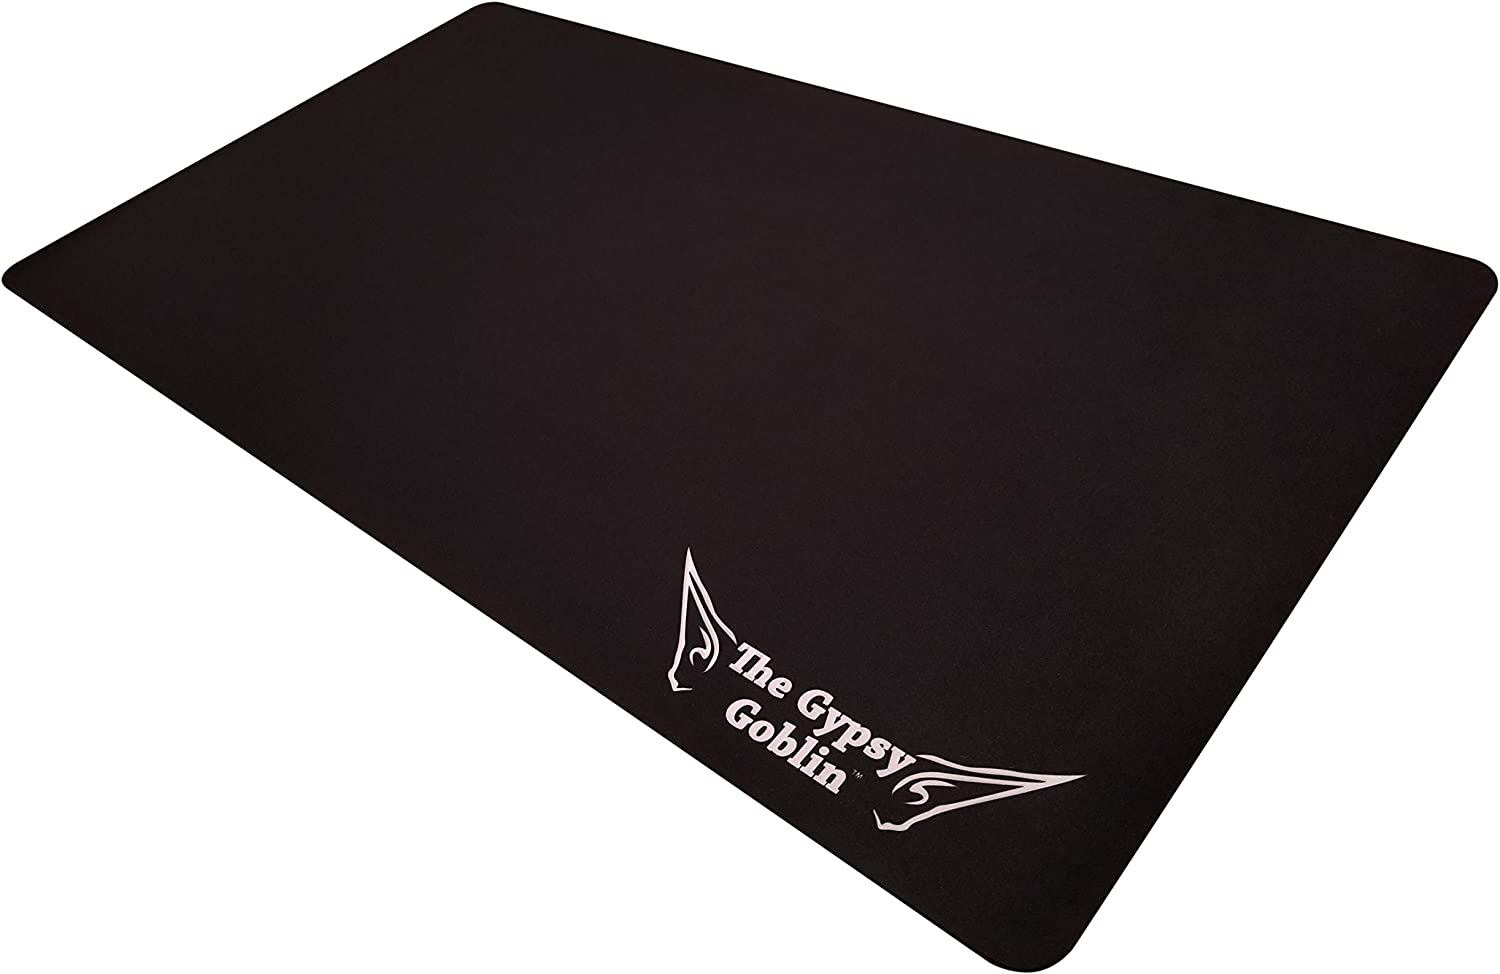 """The Gypsy Goblin Black MTG Playmat for Card Games - 24""""x13.5, Smooth Card Playing Mat Protects Your Cards & Table"""